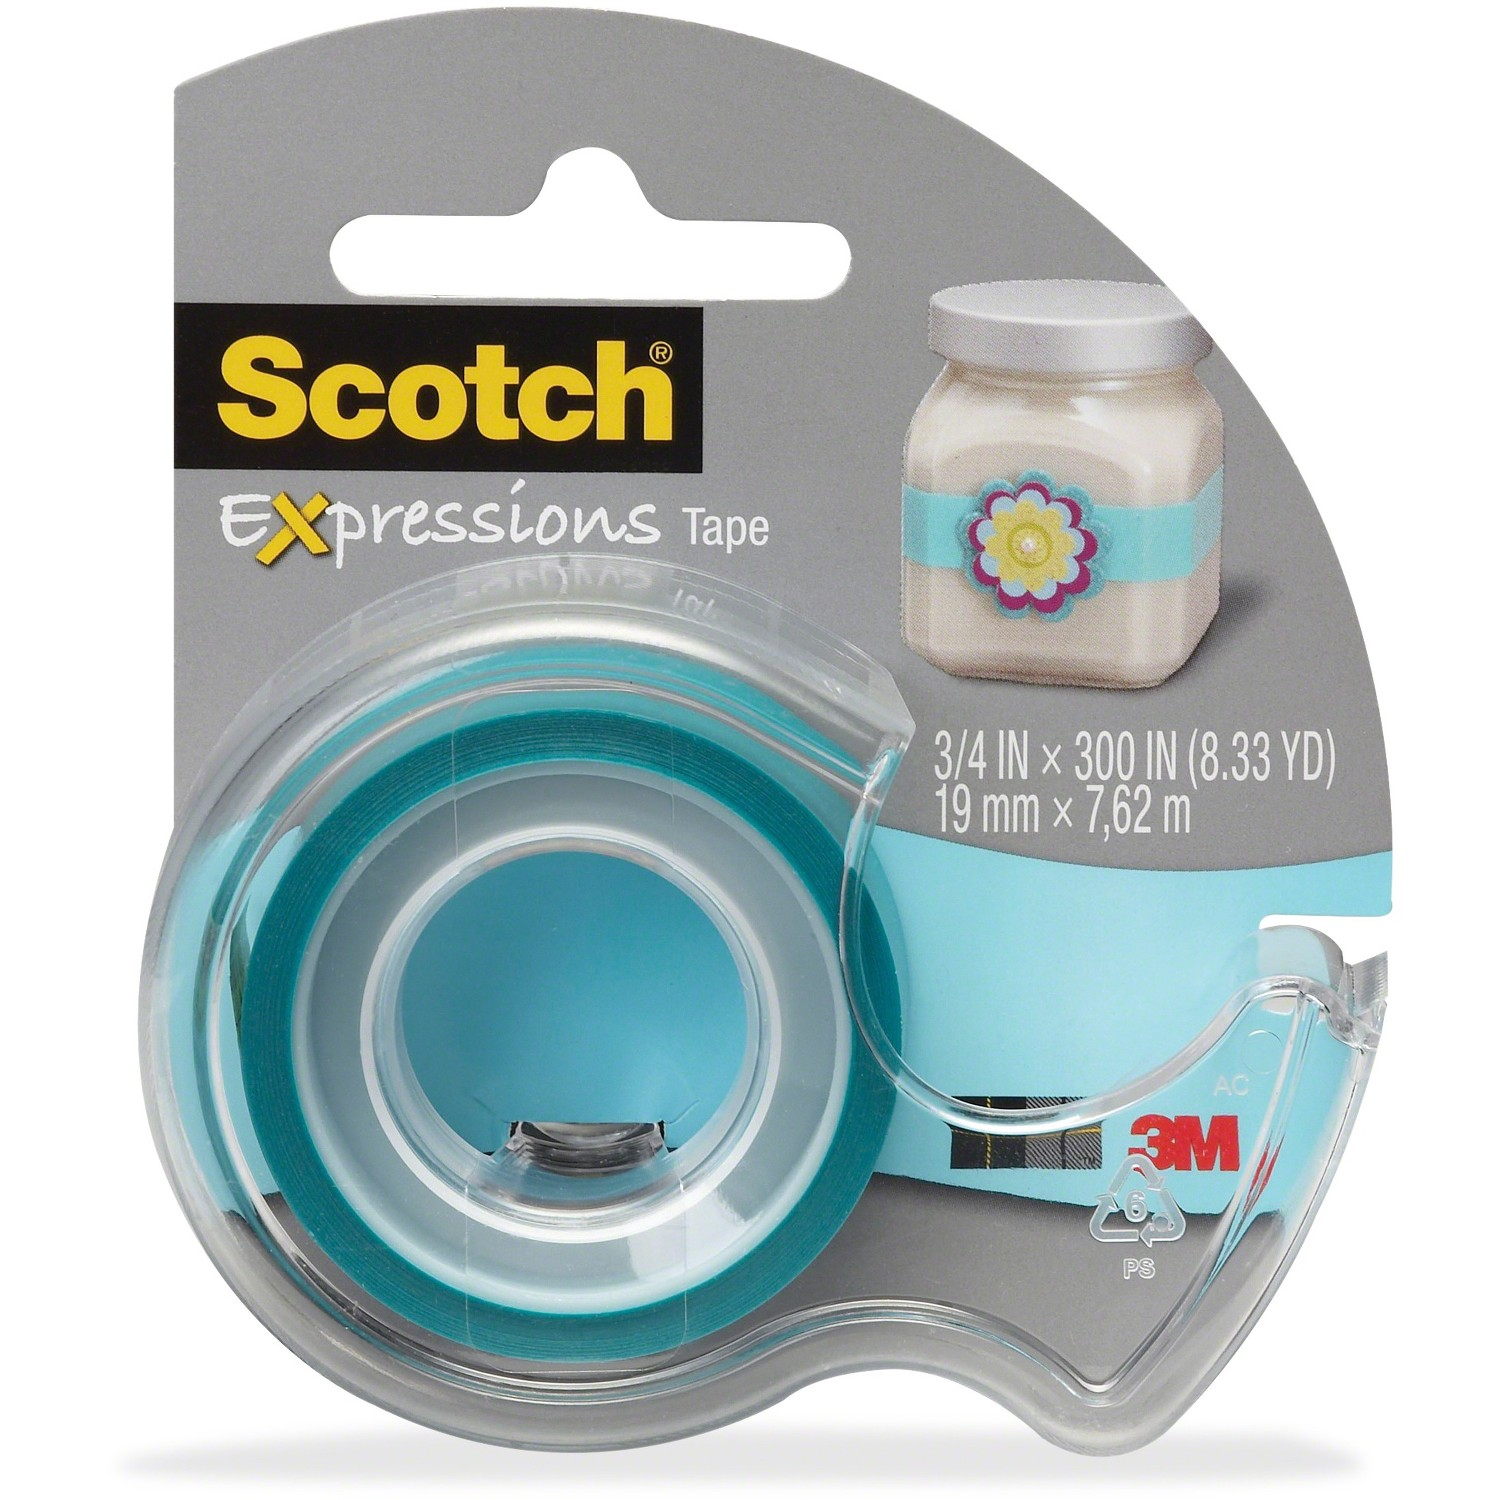 "Scotch Expressions Magic Tape with Dispenser, 3/4"" x 300"", Turquoise"